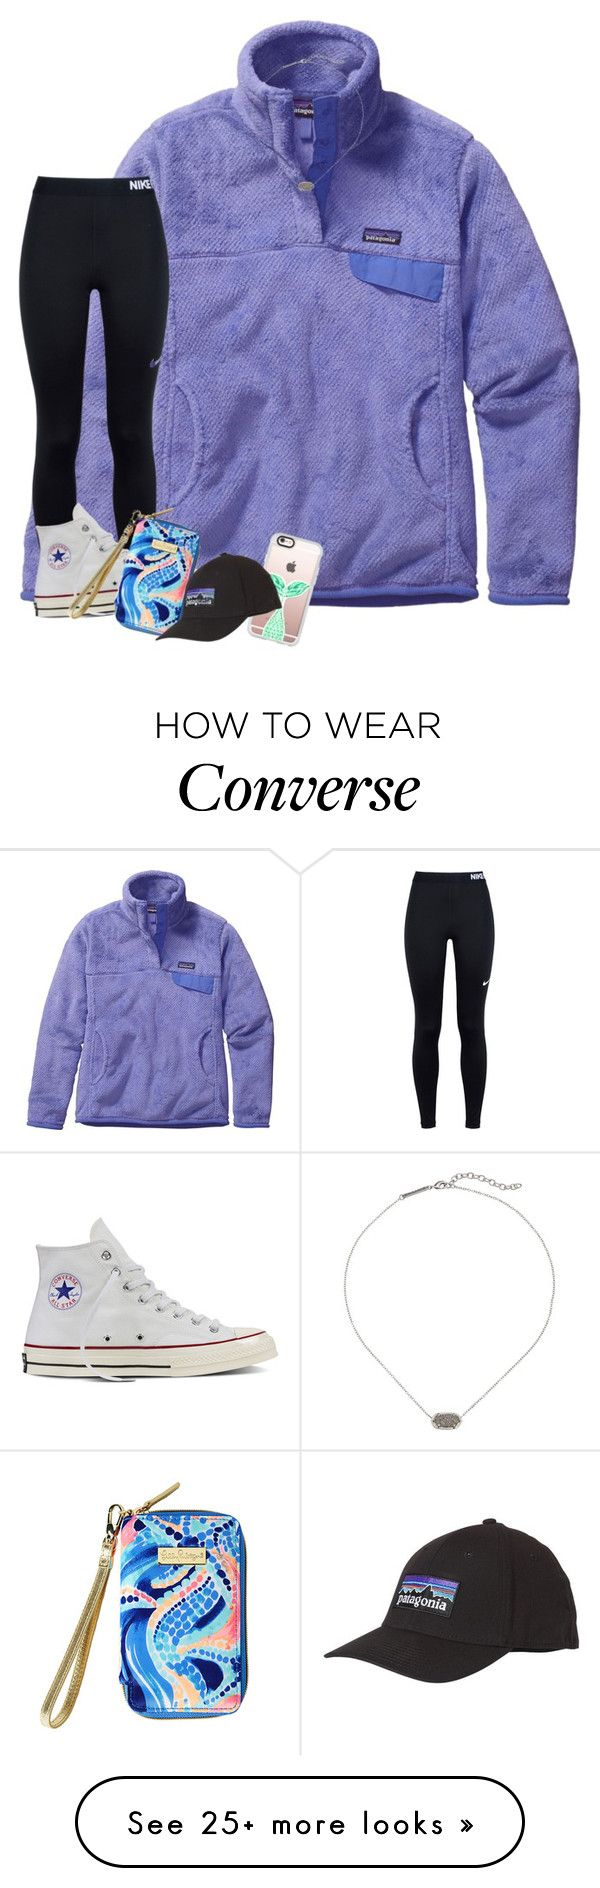 """went to the lilly store for the first time last week and got this wristlet!!"" by morganmestan on Polyvore featuring Patagonia, NIKE, Converse, Lilly Pulitzer, Kendra Scott and Casetify"